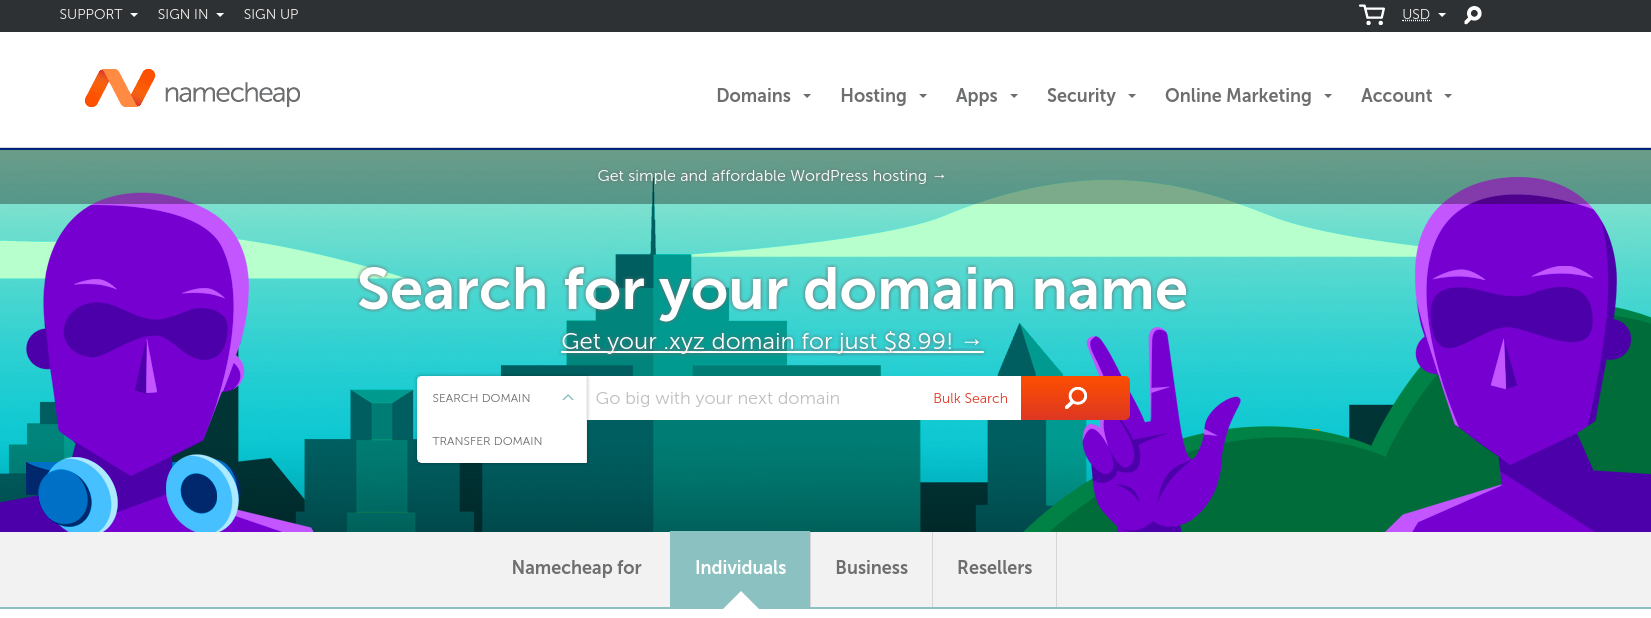 Namecheap search for domain